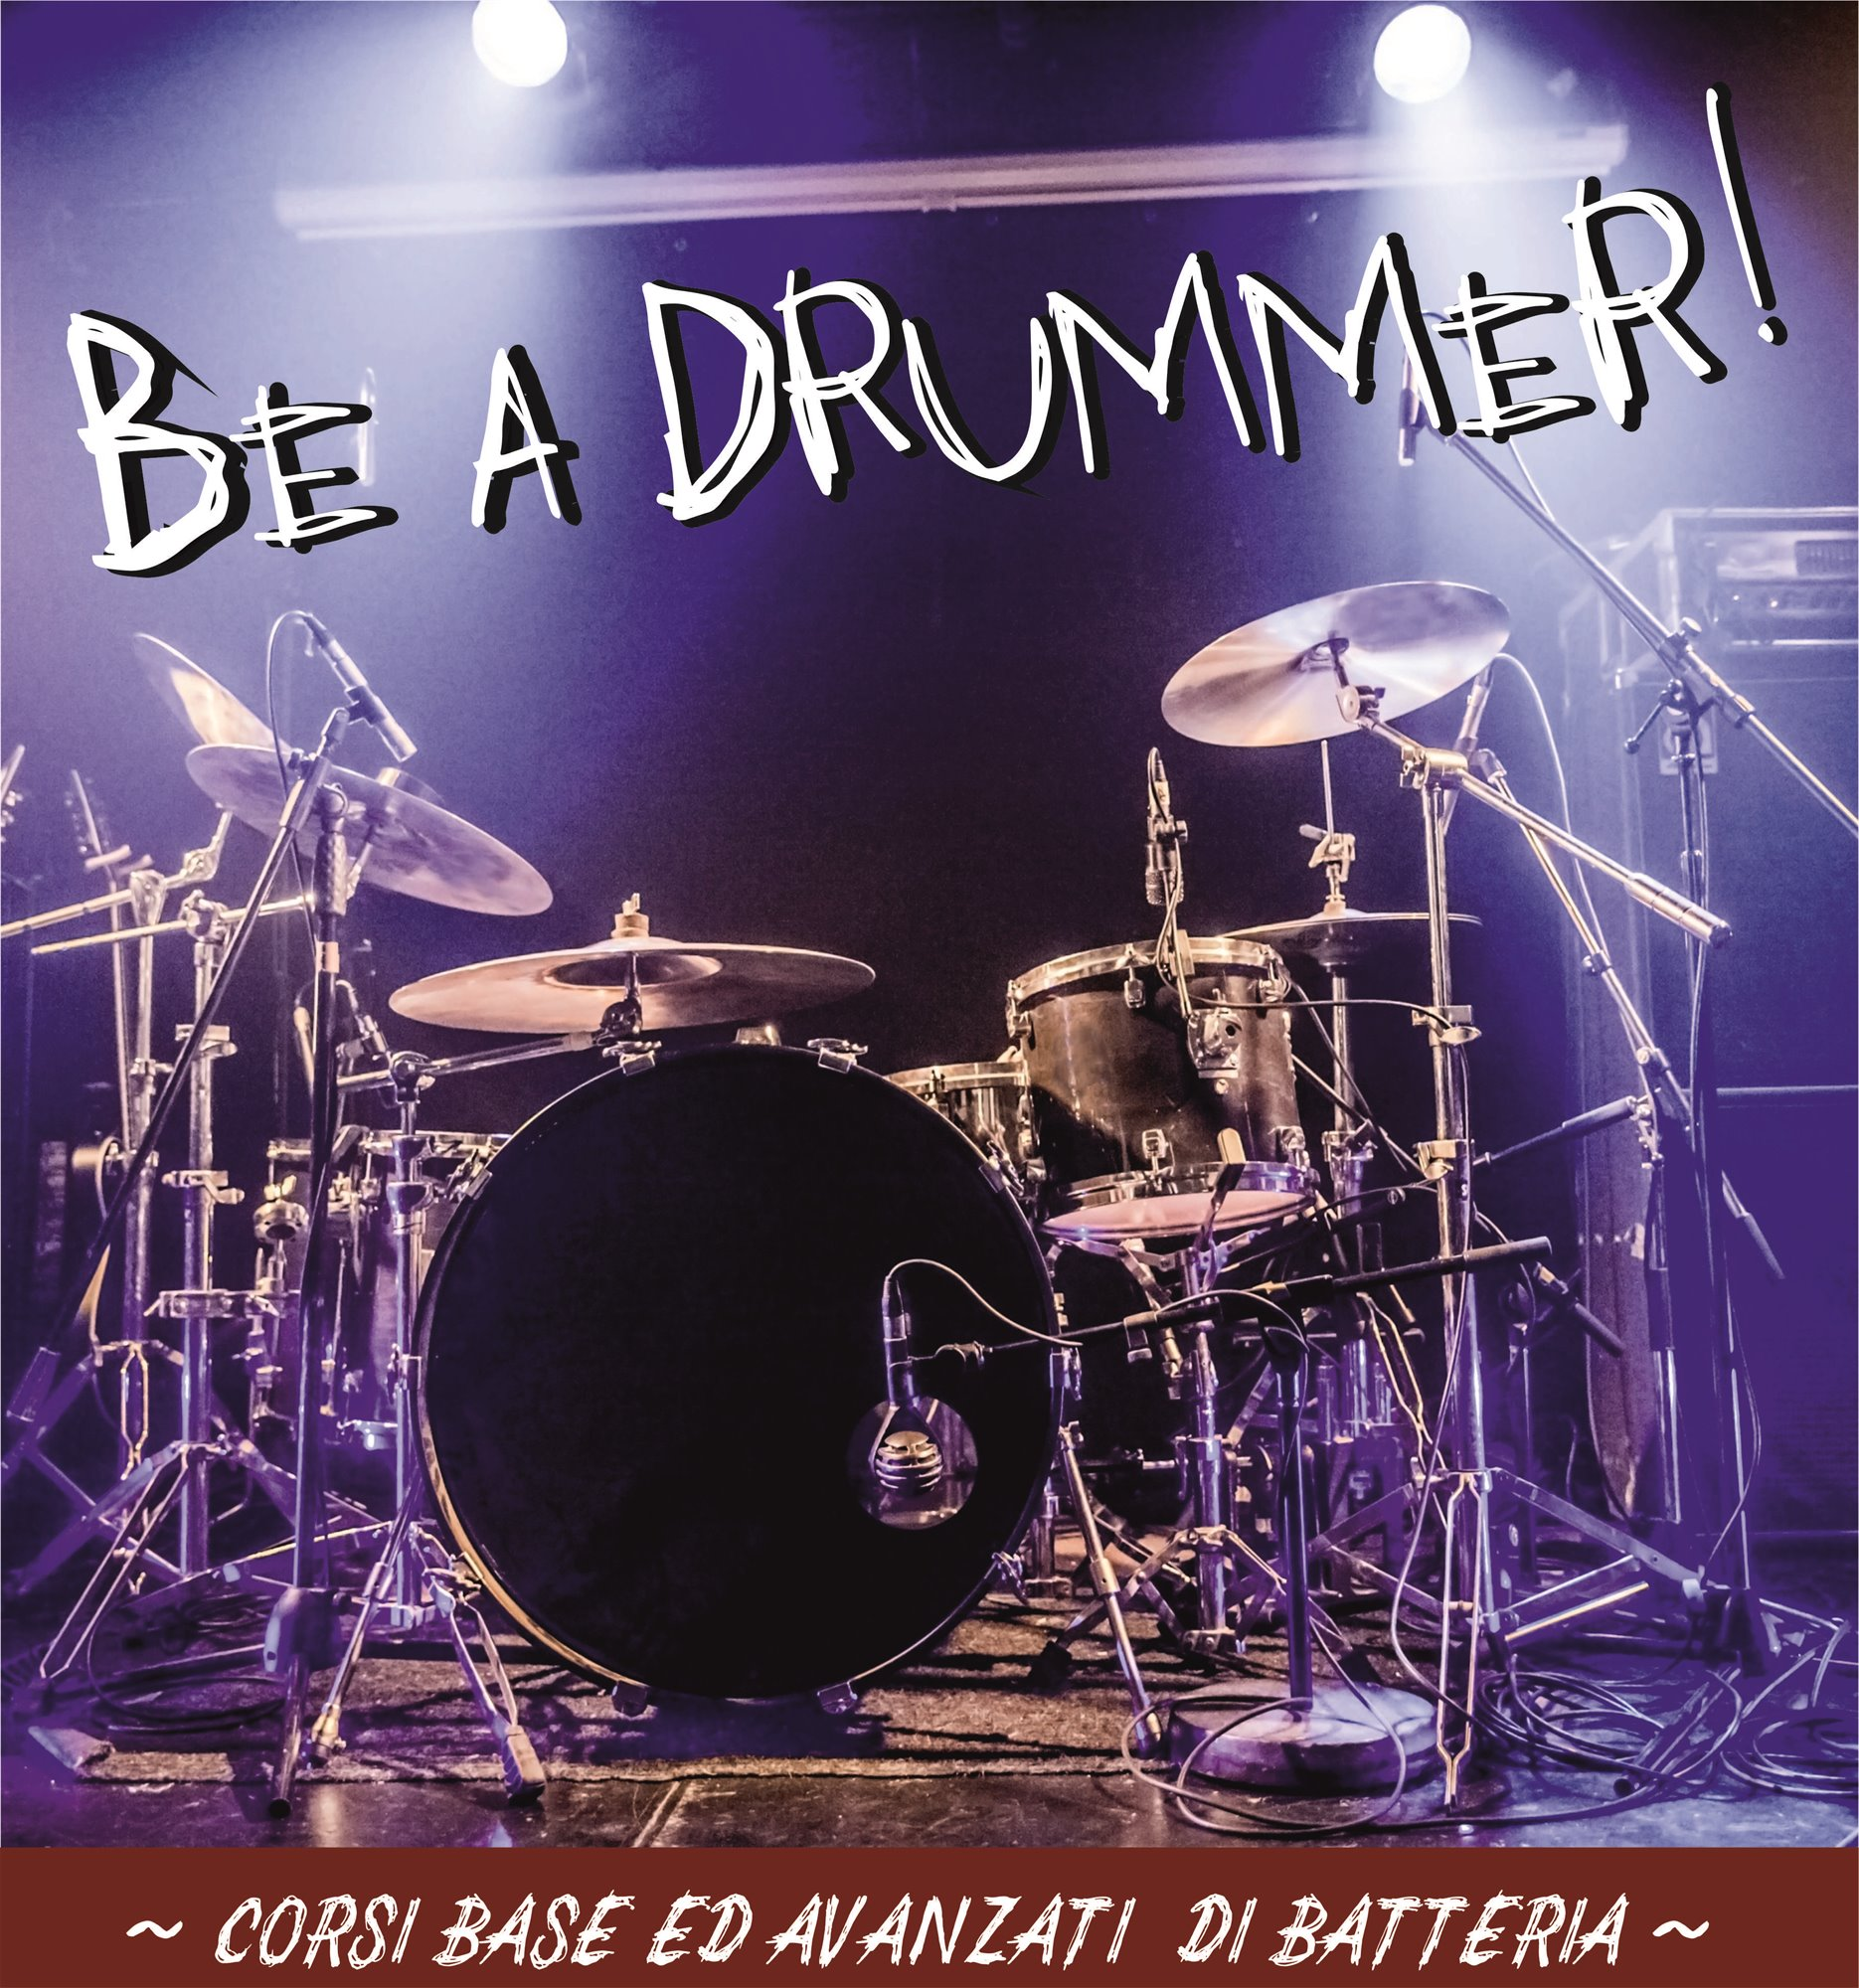 Be a Drummer!